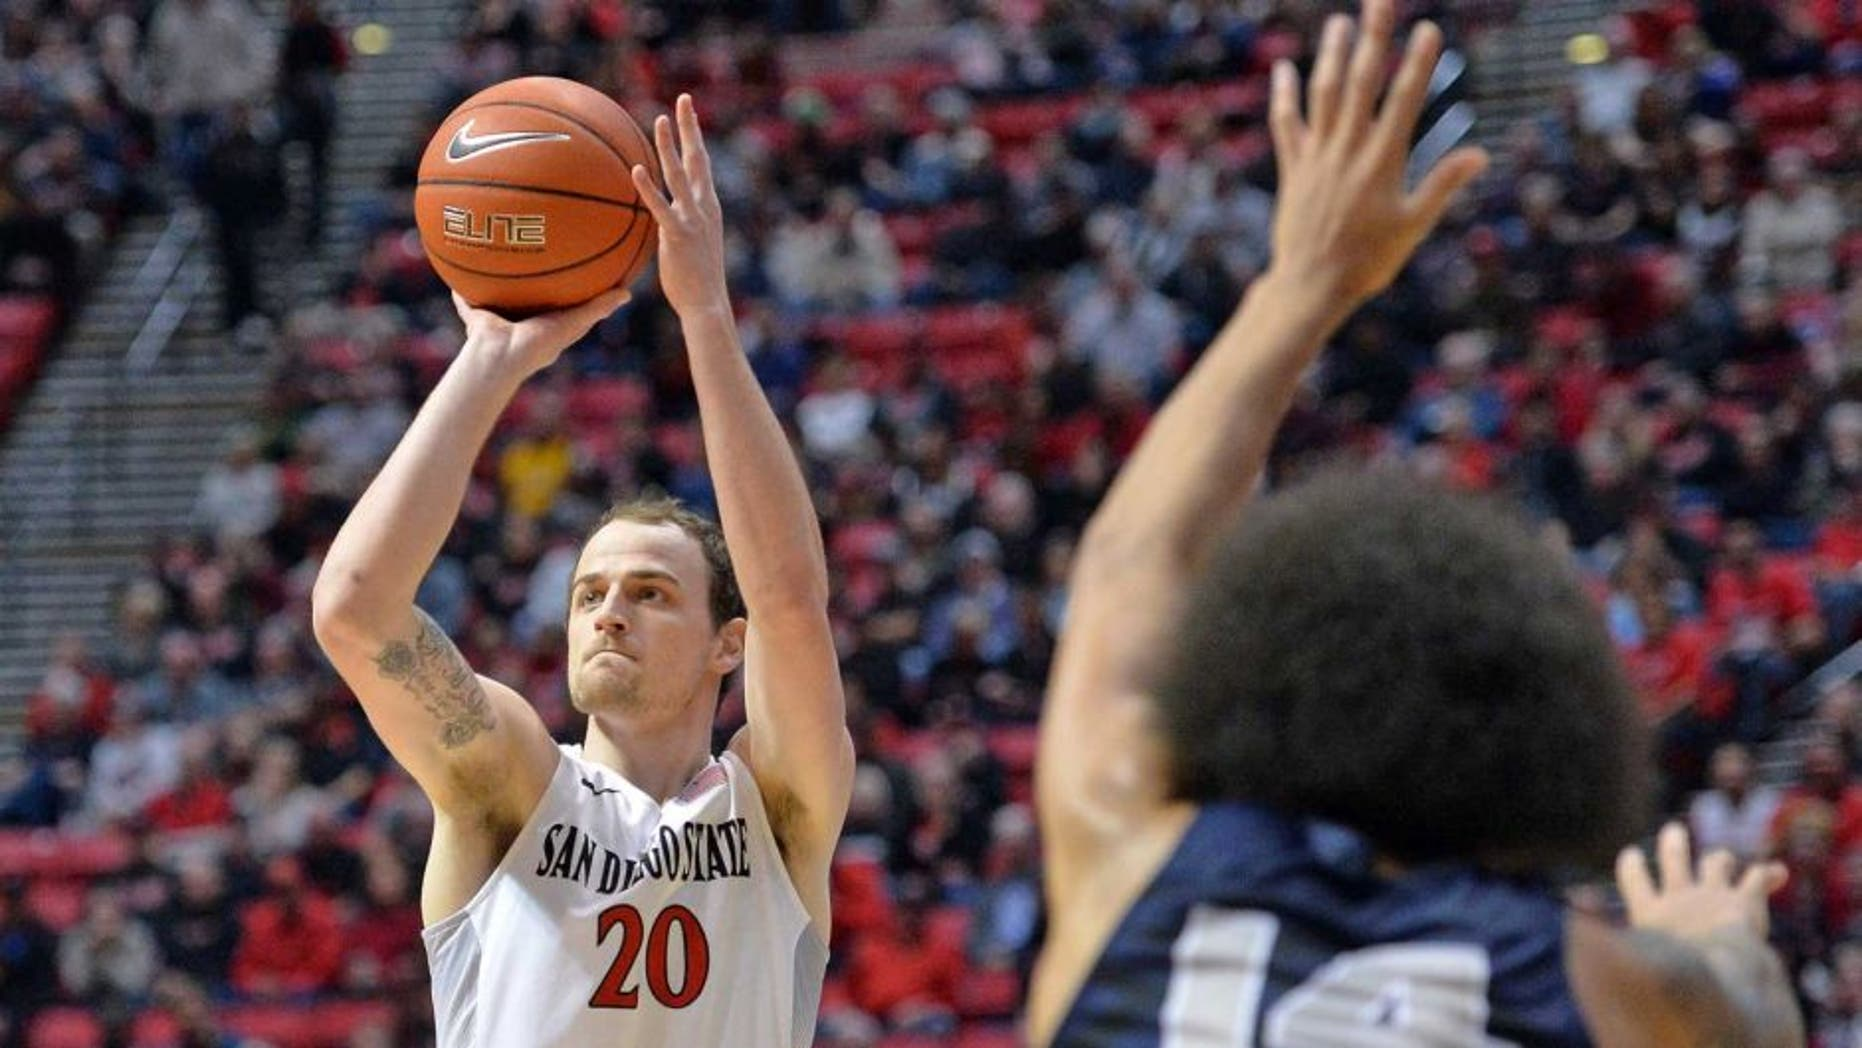 Jan 14, 2017; San Diego, CA, USA; San Diego State Aztecs forward Matt Shrigley (20) attempts a shot while defended by Utah State Aggies forward Jalen Moore (14) during the first half at Viejas Arena at Aztec Bowl. Mandatory Credit: Jake Roth-USA TODAY Sports